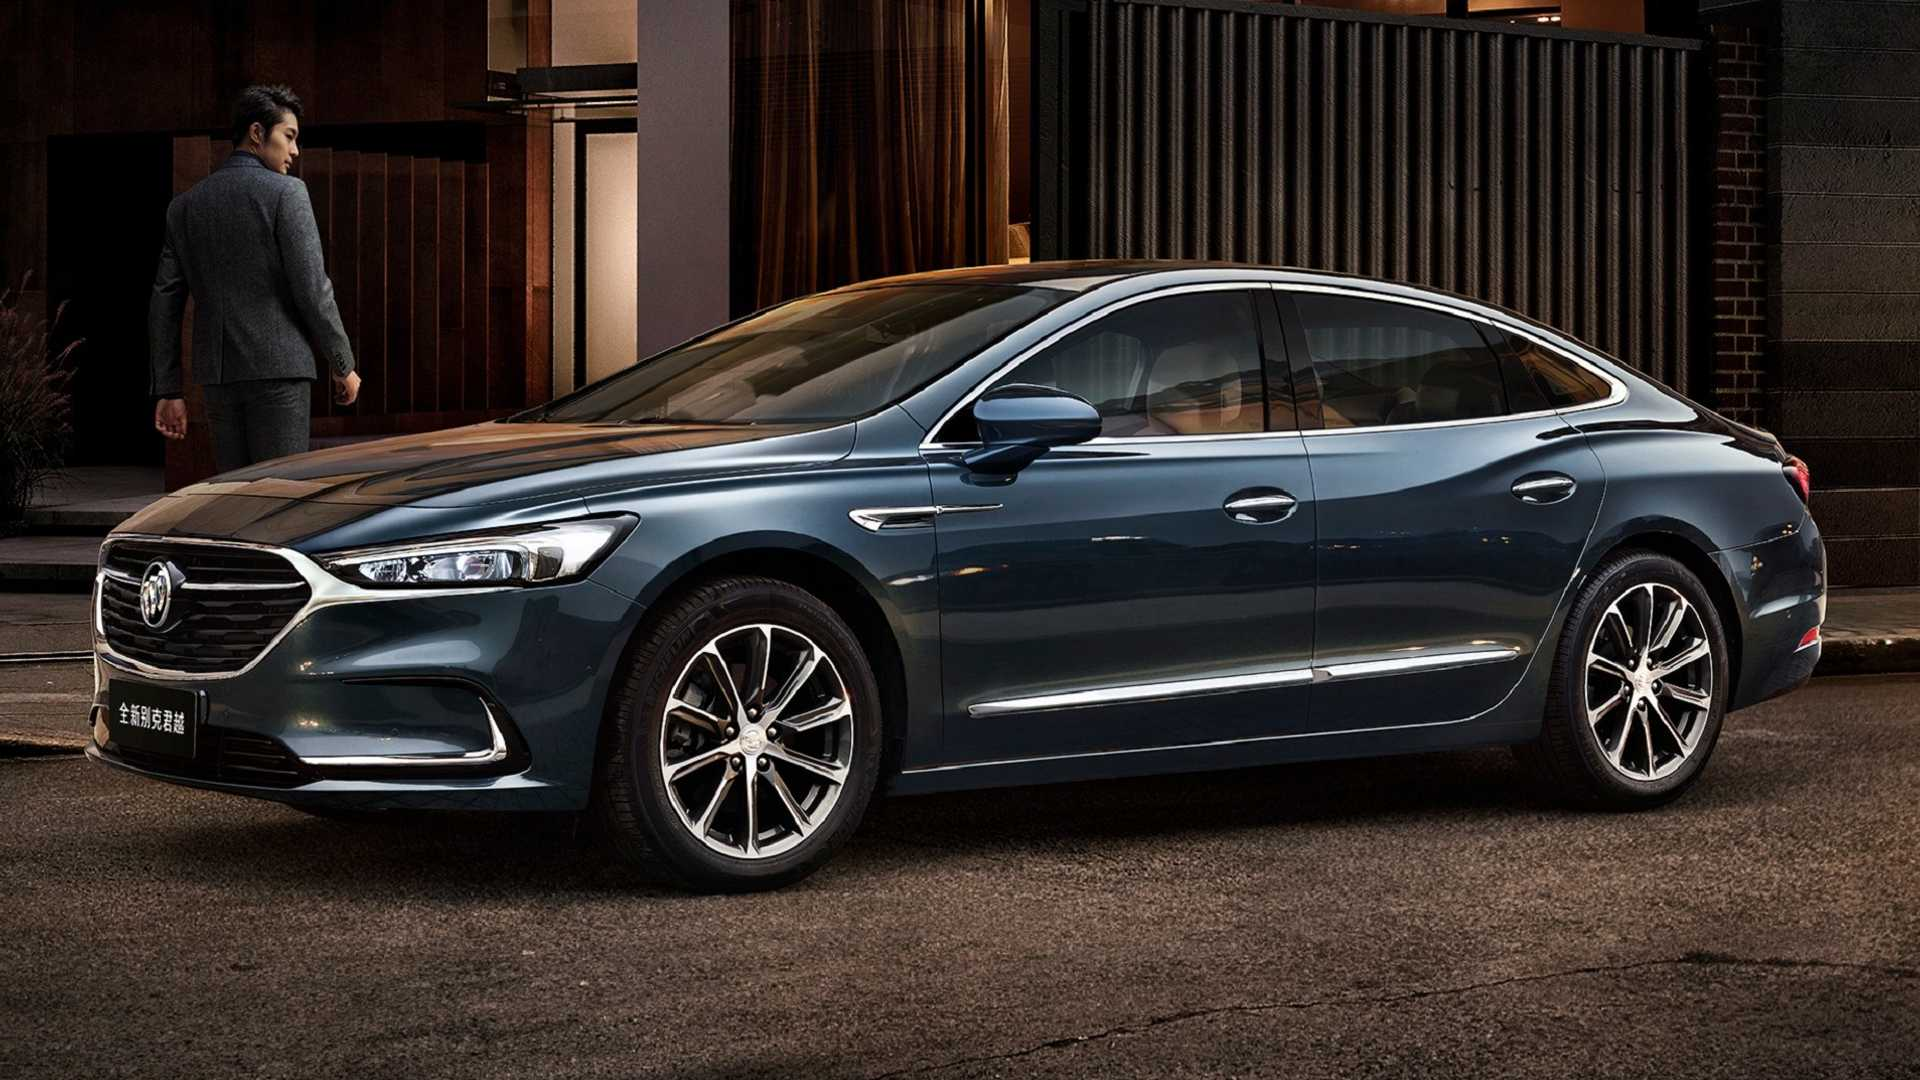 74 All New 2020 Buick Lacrosse Refresh Price And Release Date